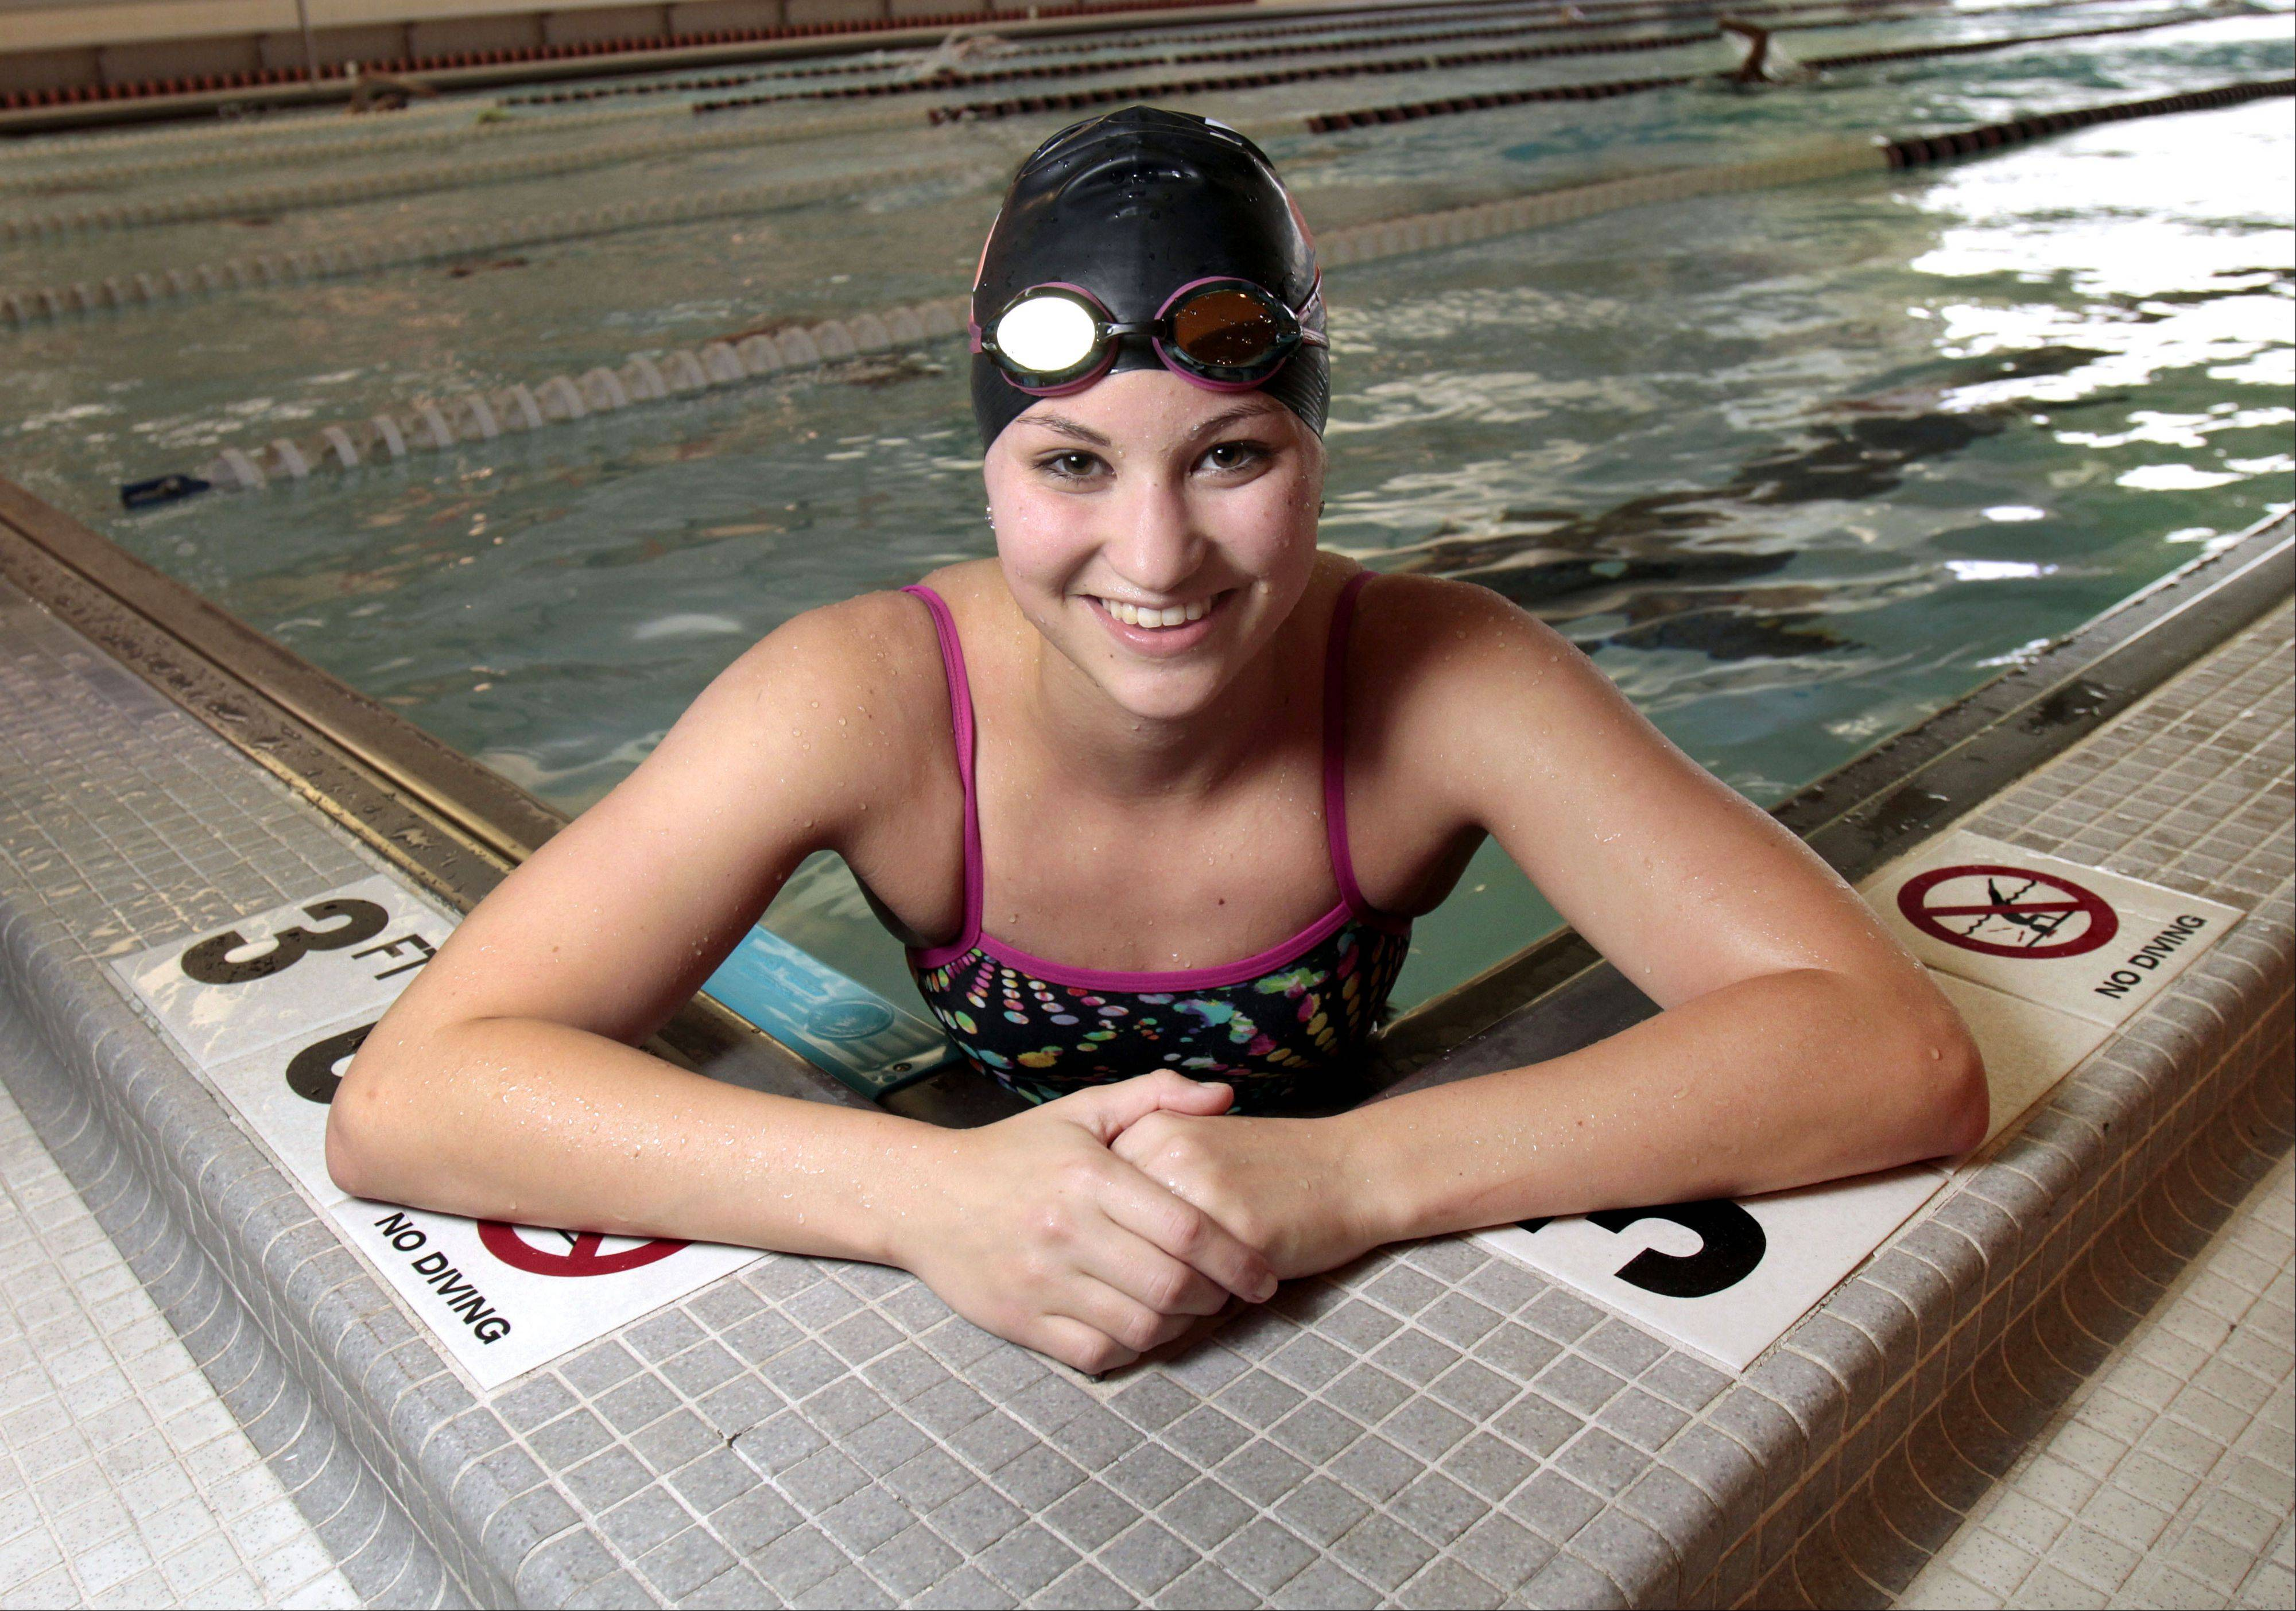 Libertyville senior swimmer Morgan Dickson placed in the top six in the 200 and 500-yard freestyles at state last year. She hopes focusing on leg strength will give her a leg up on the competition as she begins her senior year.